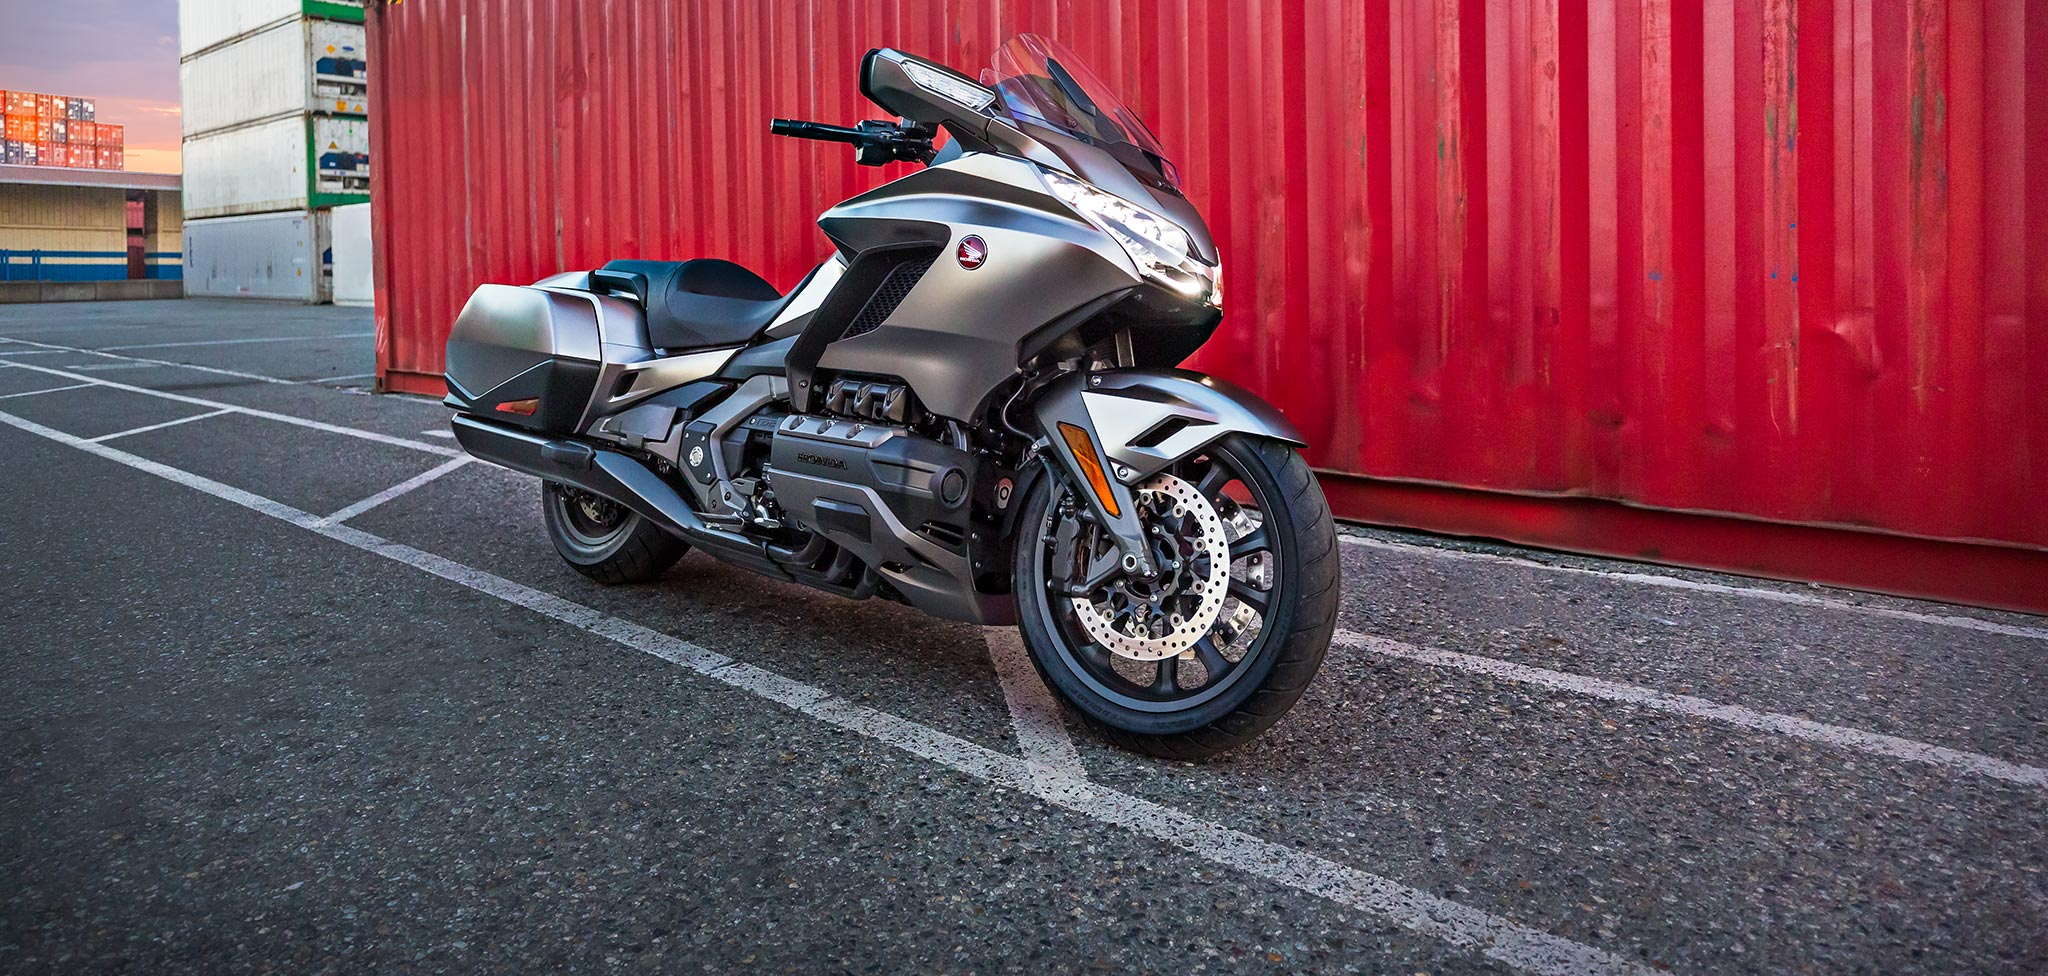 2020 Goldwing silver